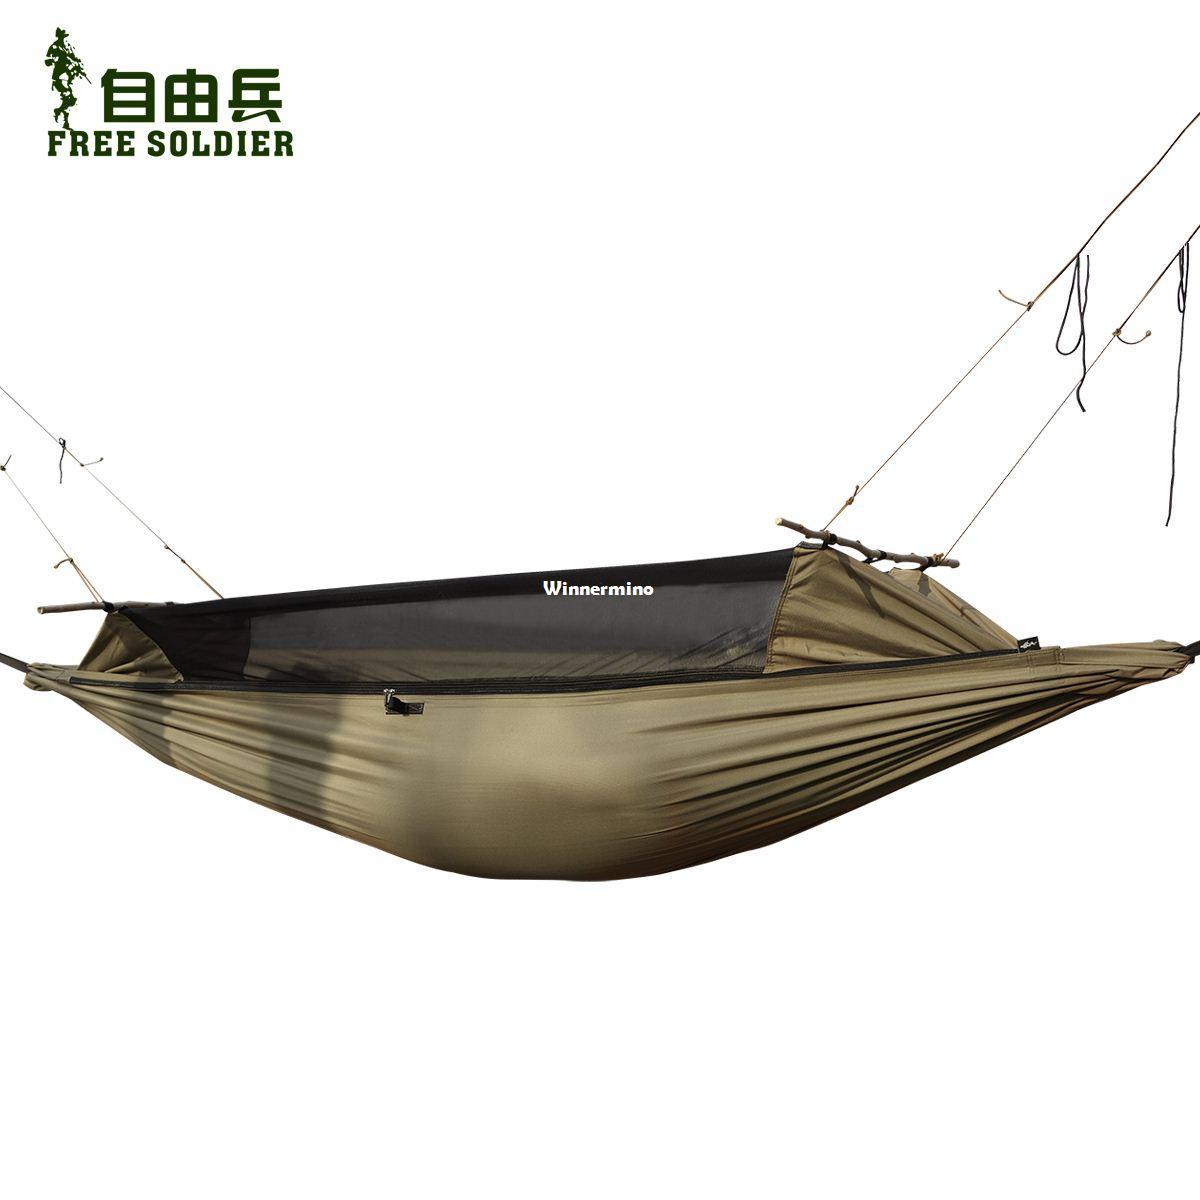 2018 1509 free soldiers outdoor hammocks survivors multifunctional portable ground anti mosquito wear tear tent hammock ai0066 90 220cm from winnermino     2018 1509 free soldiers outdoor hammocks survivors multifunctional      rh   dhgate